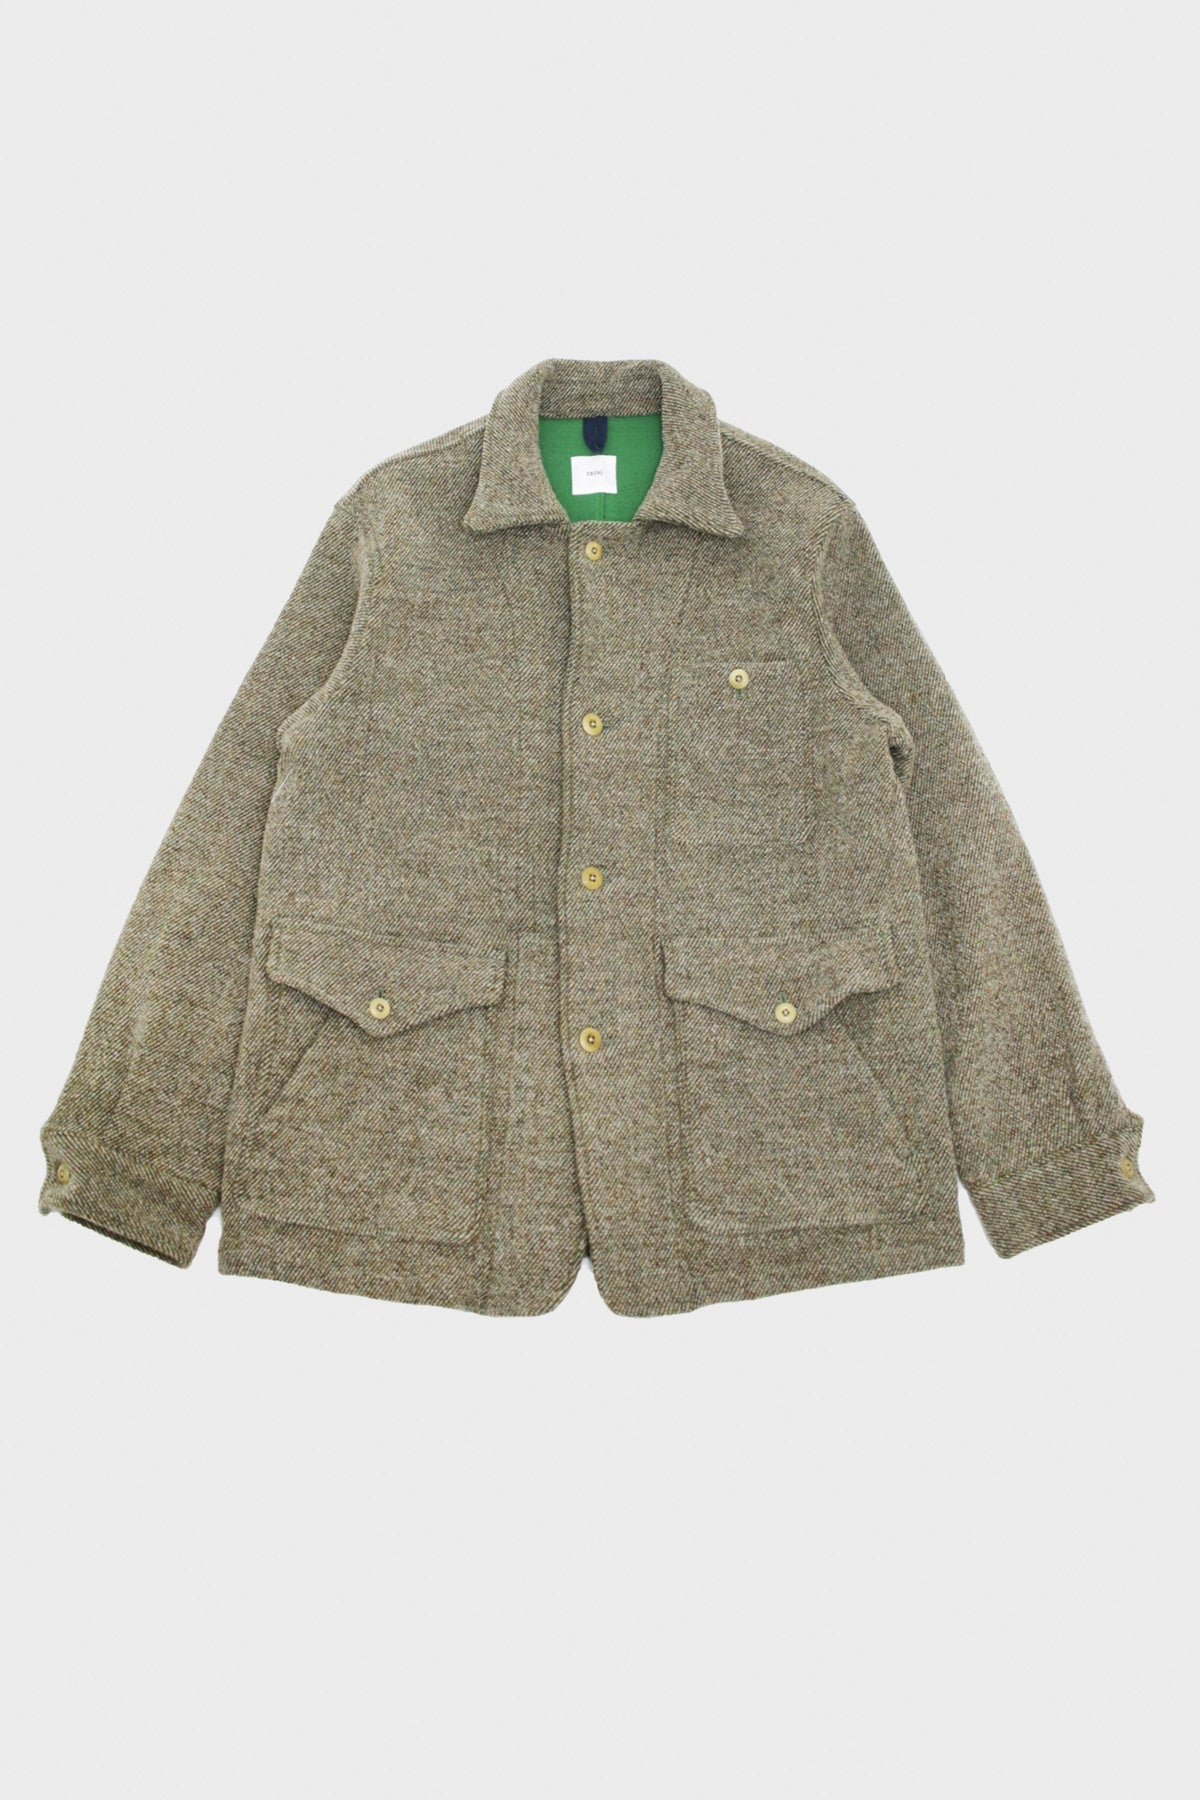 ts(s) - Bird Watching Jacket - Khaki - Canoe Club